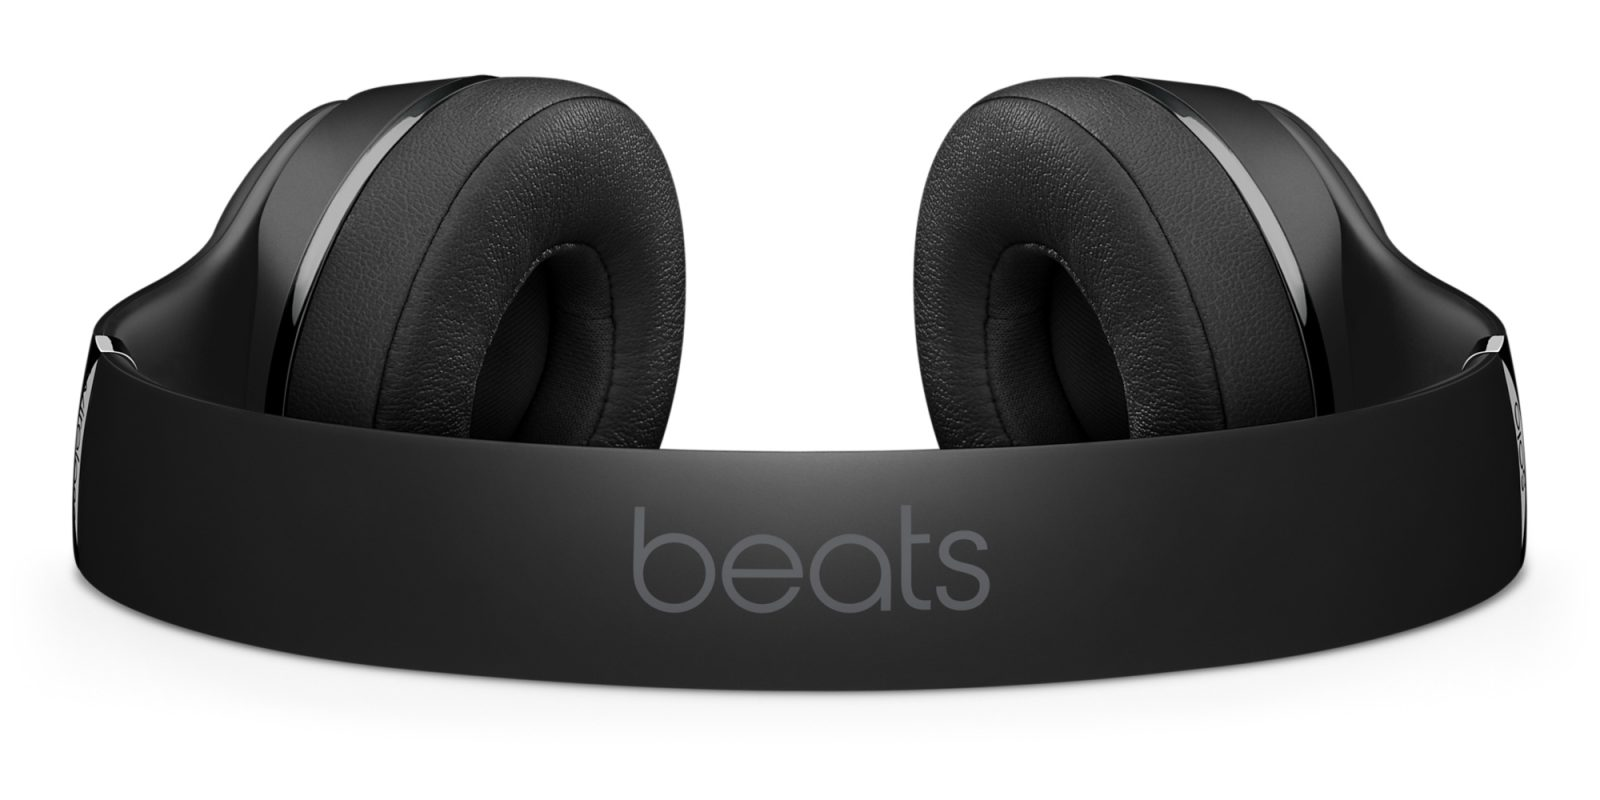 Beats Solo3 Wireless Headphones offer Apple's W1 chip, more for $160 shipped